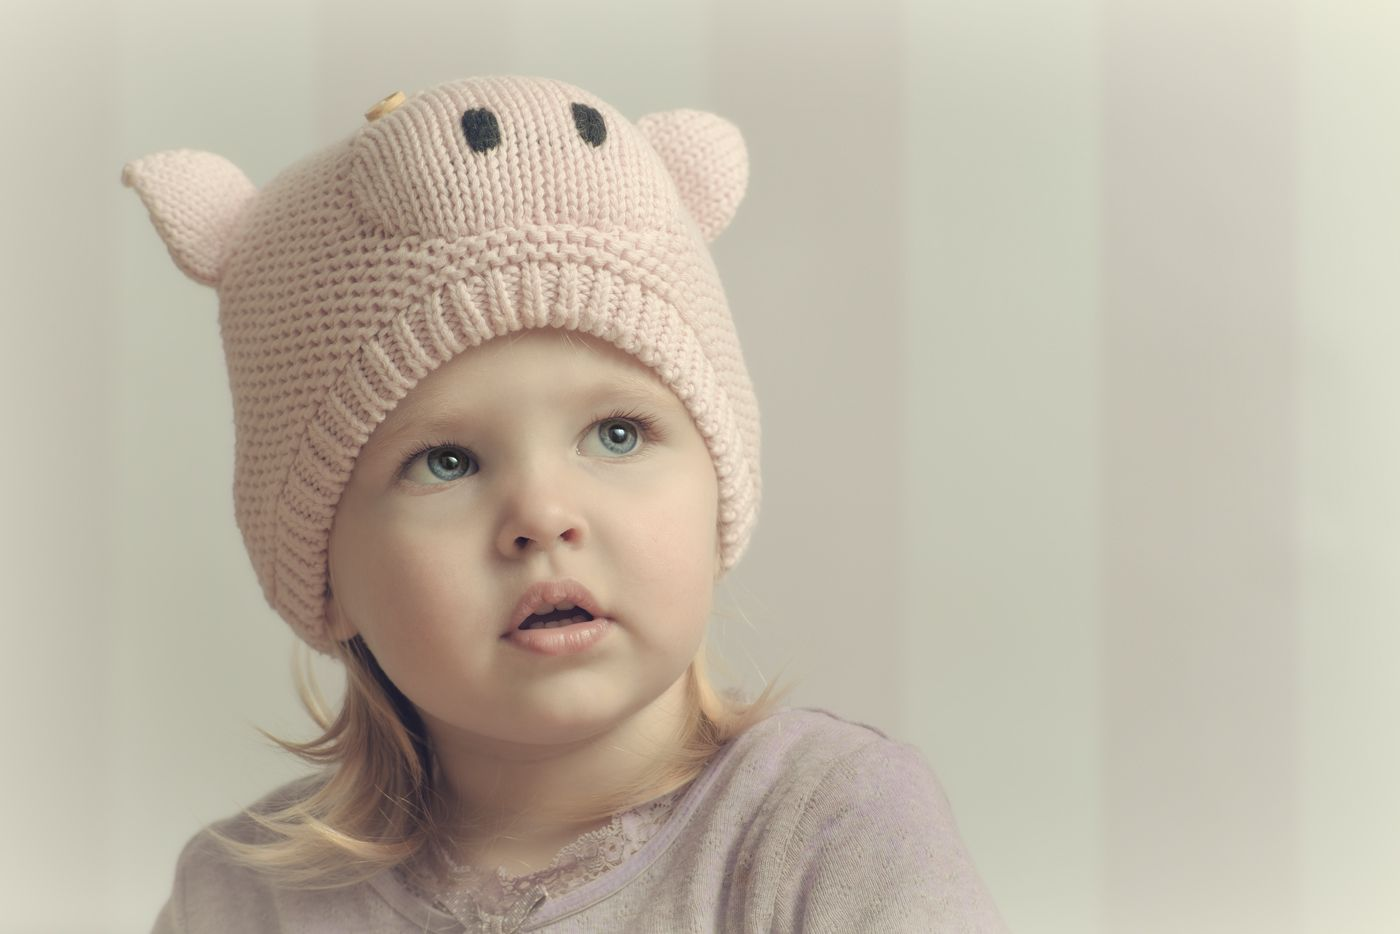 "Sent to us by Aaron Karnovski  who writes ""This Little Piggy"" taken yesterday, was a spur of the moment shot of my 21 month old niece, Amelia. She looked so adorable wearing the little hat that I simply had to photograph her. I quickly set up an off camera manual flash and shoot through umbrella, as my sister read Amelia a story. I waited for her to become totally engrossed before taking the shot. Photograph taken at home using a Nikon D800 and an old 70-210 f/4-5.6D @210mm f/8."